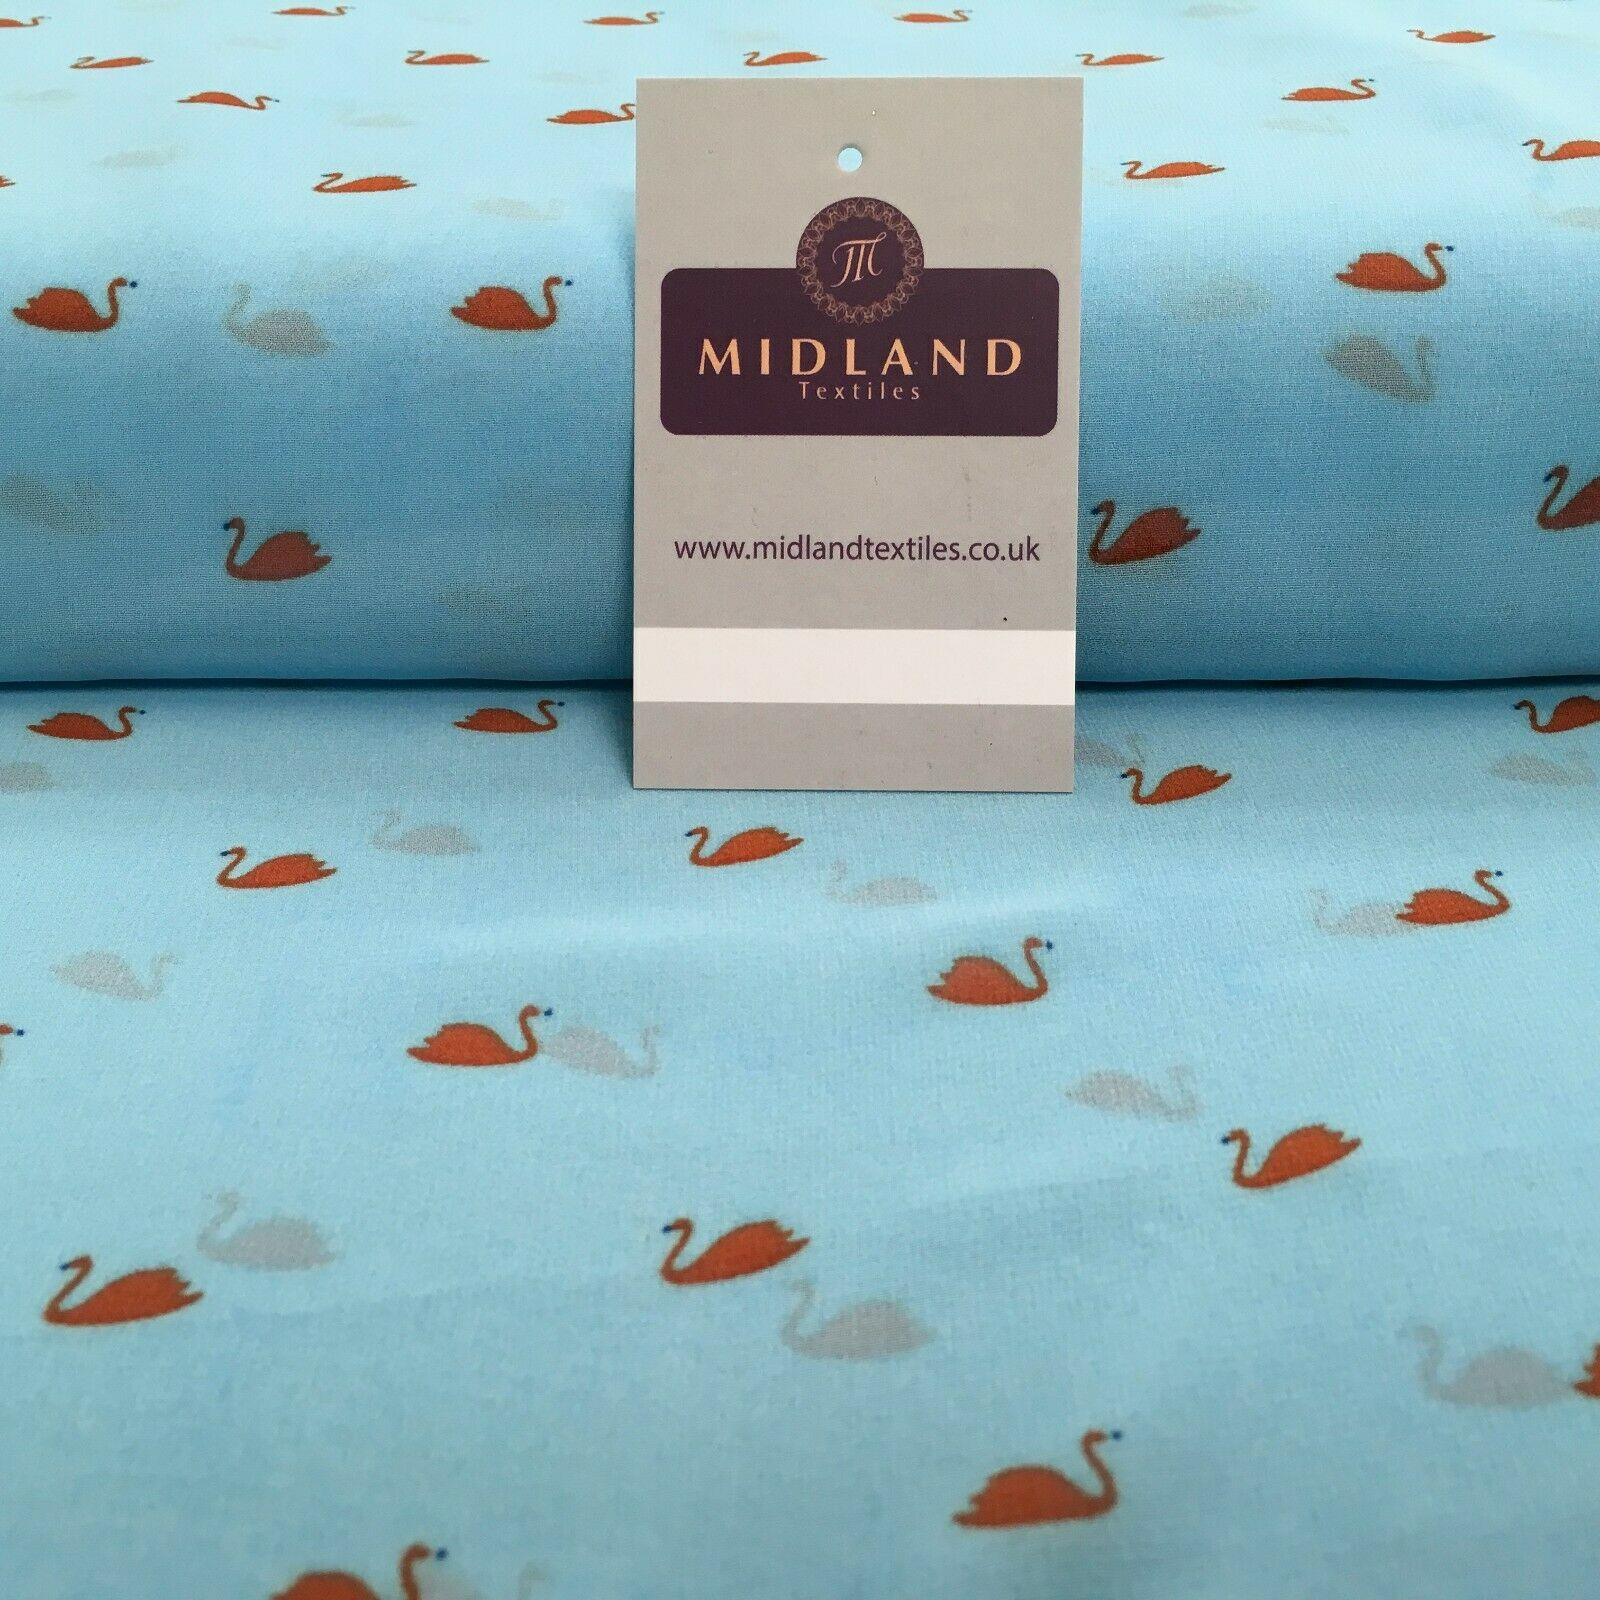 Sky Blue Swan Printed Light High Street Chiffon Fabric 150cm MK1084-20